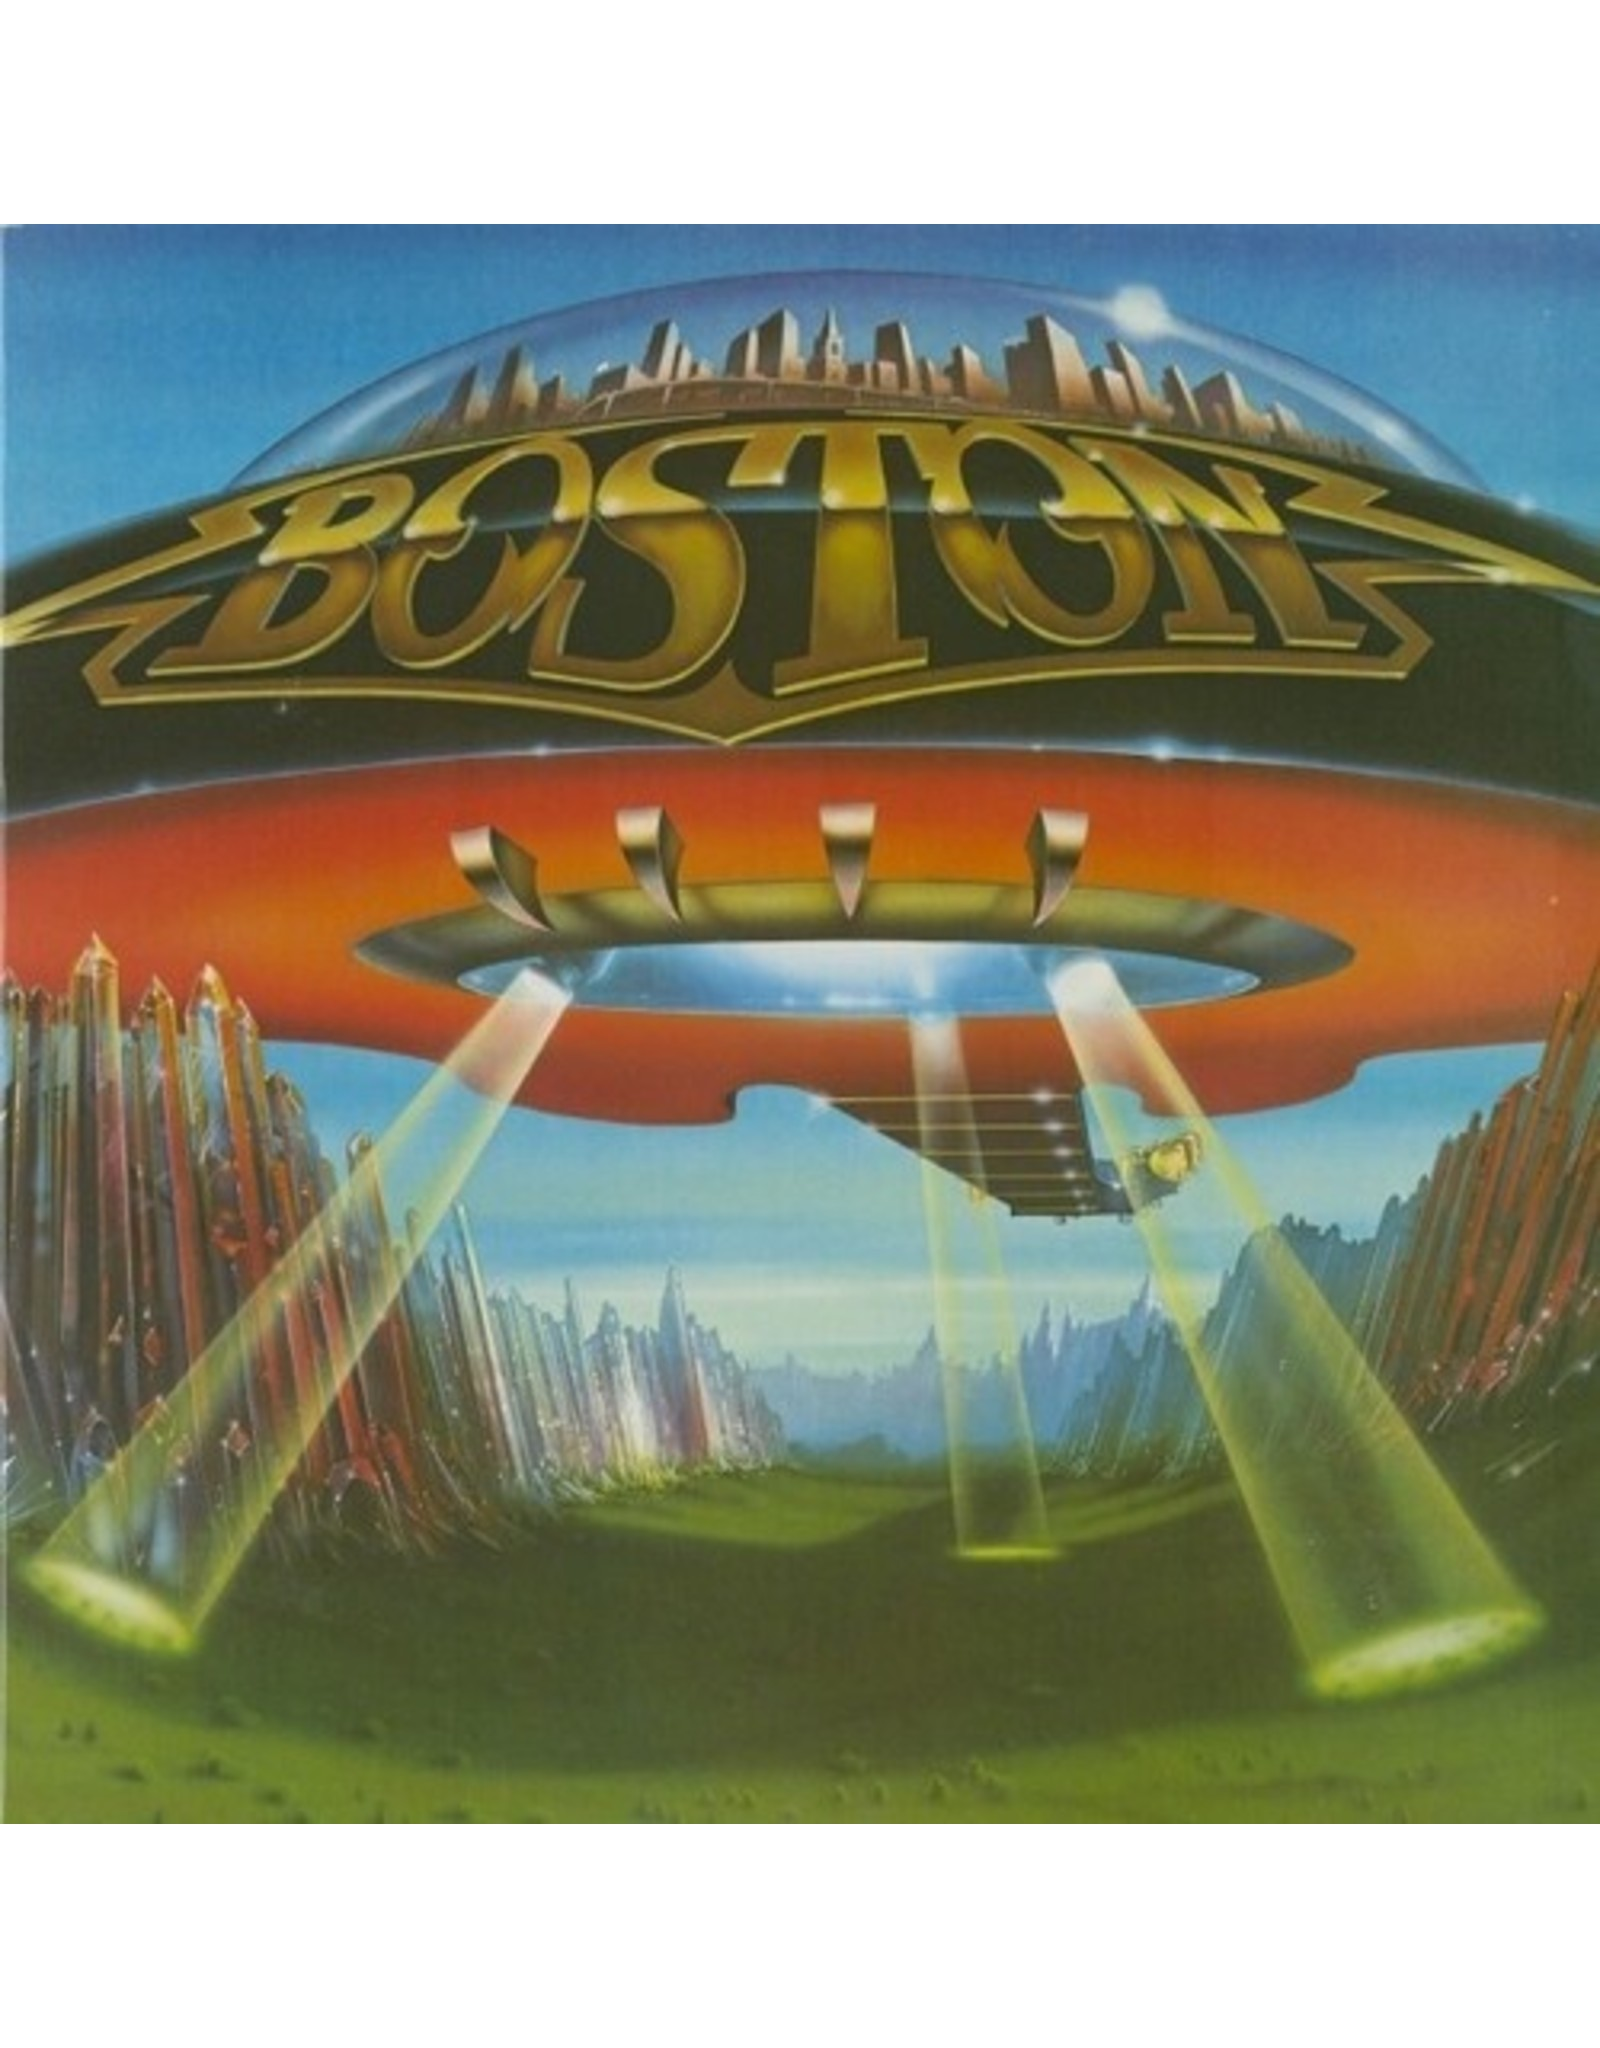 New Vinyl Boston - Don't Look Back (180g, Color) LP